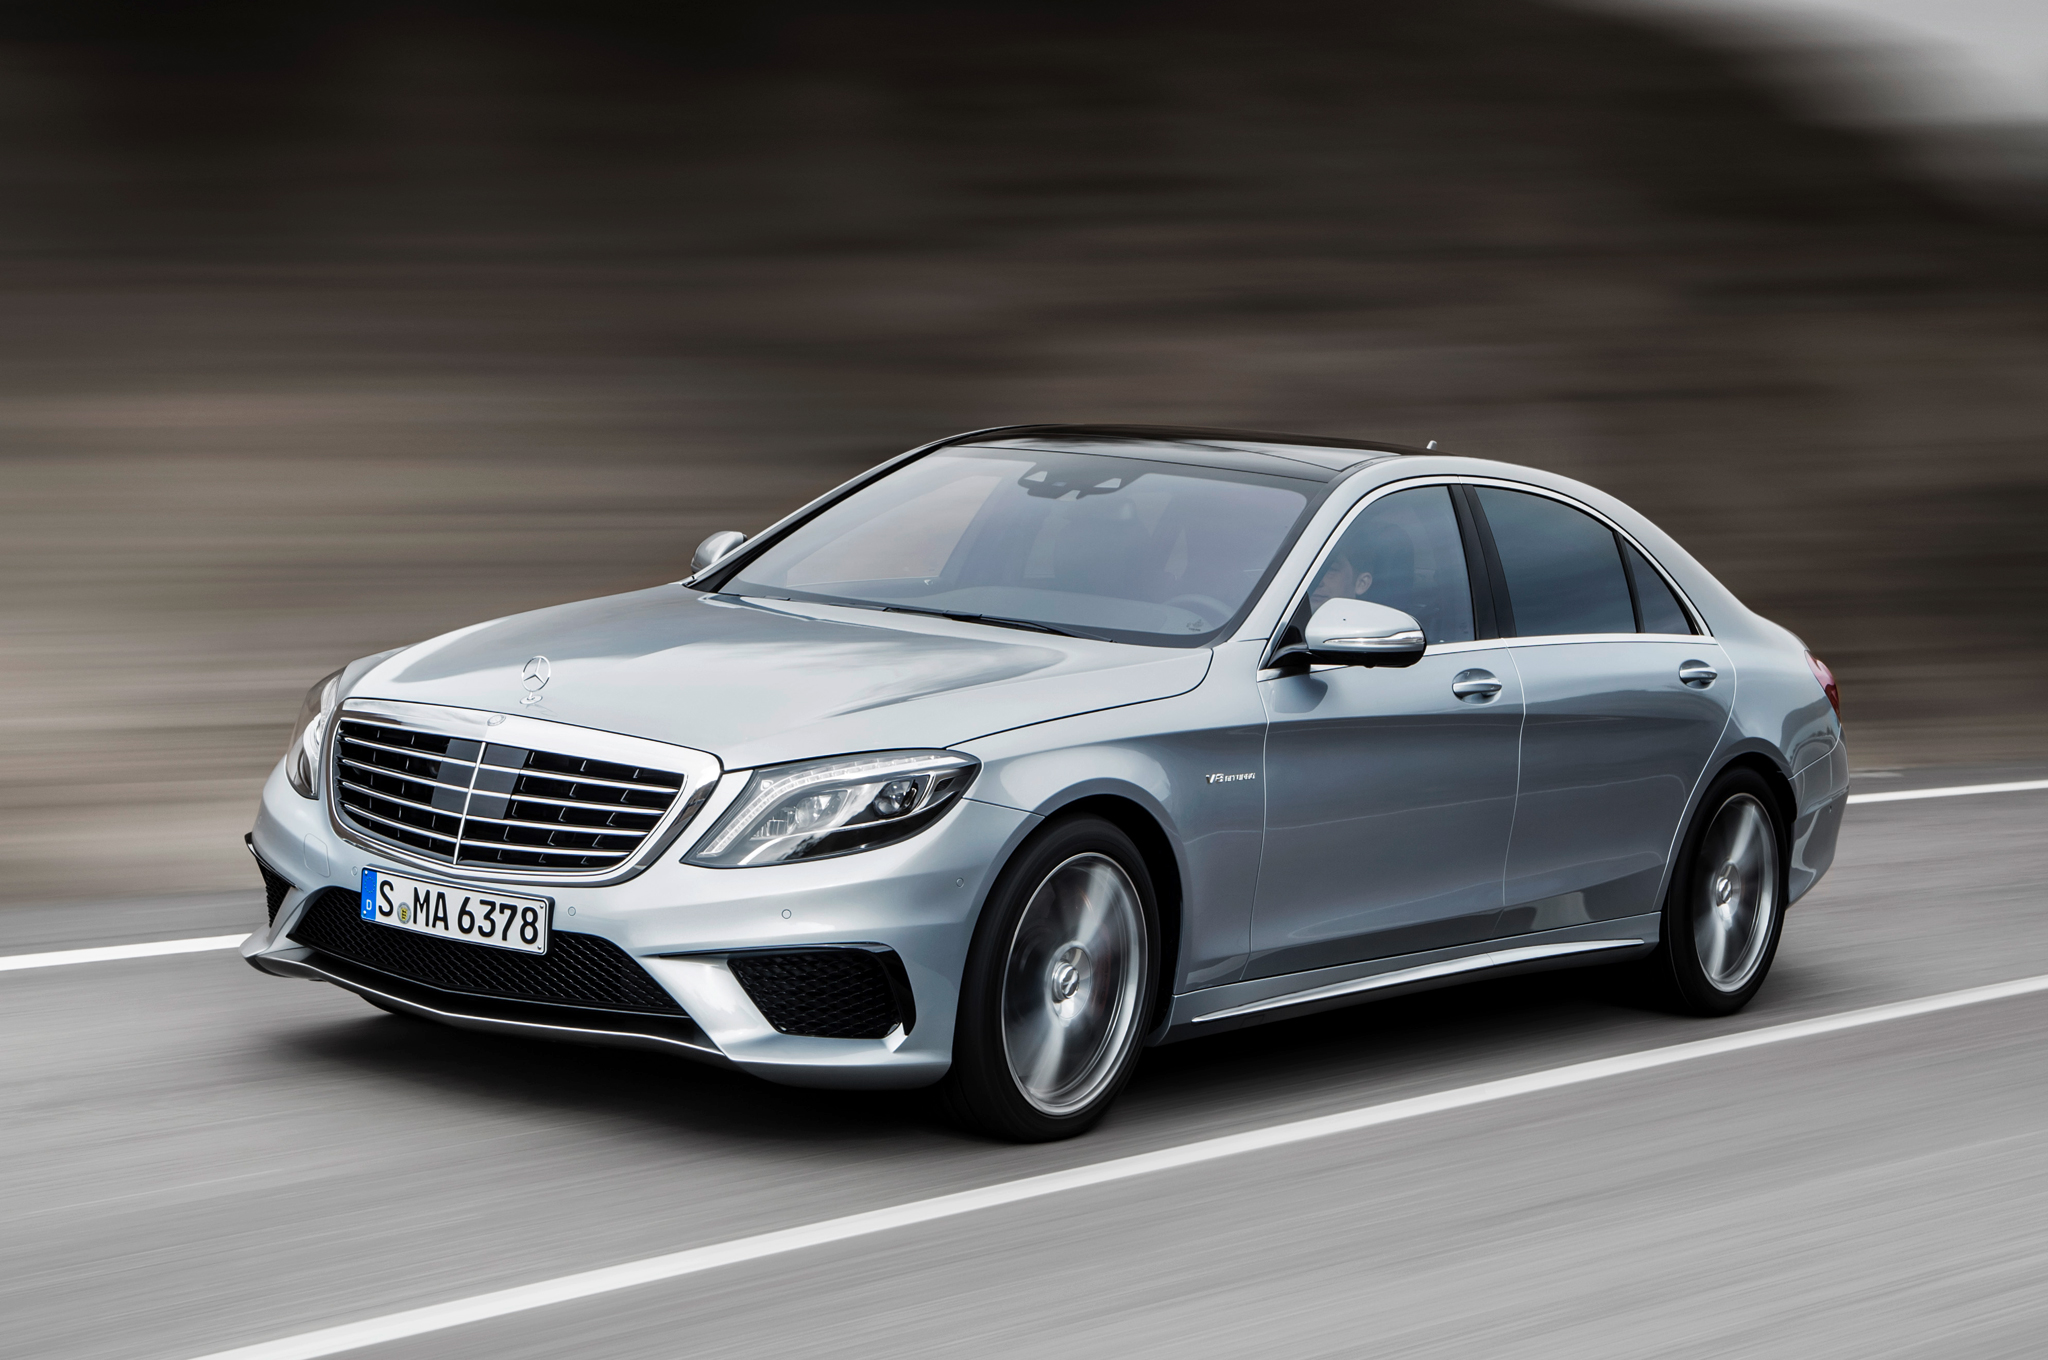 2014 Mercedes Benz S63 AMG S Model First Drive